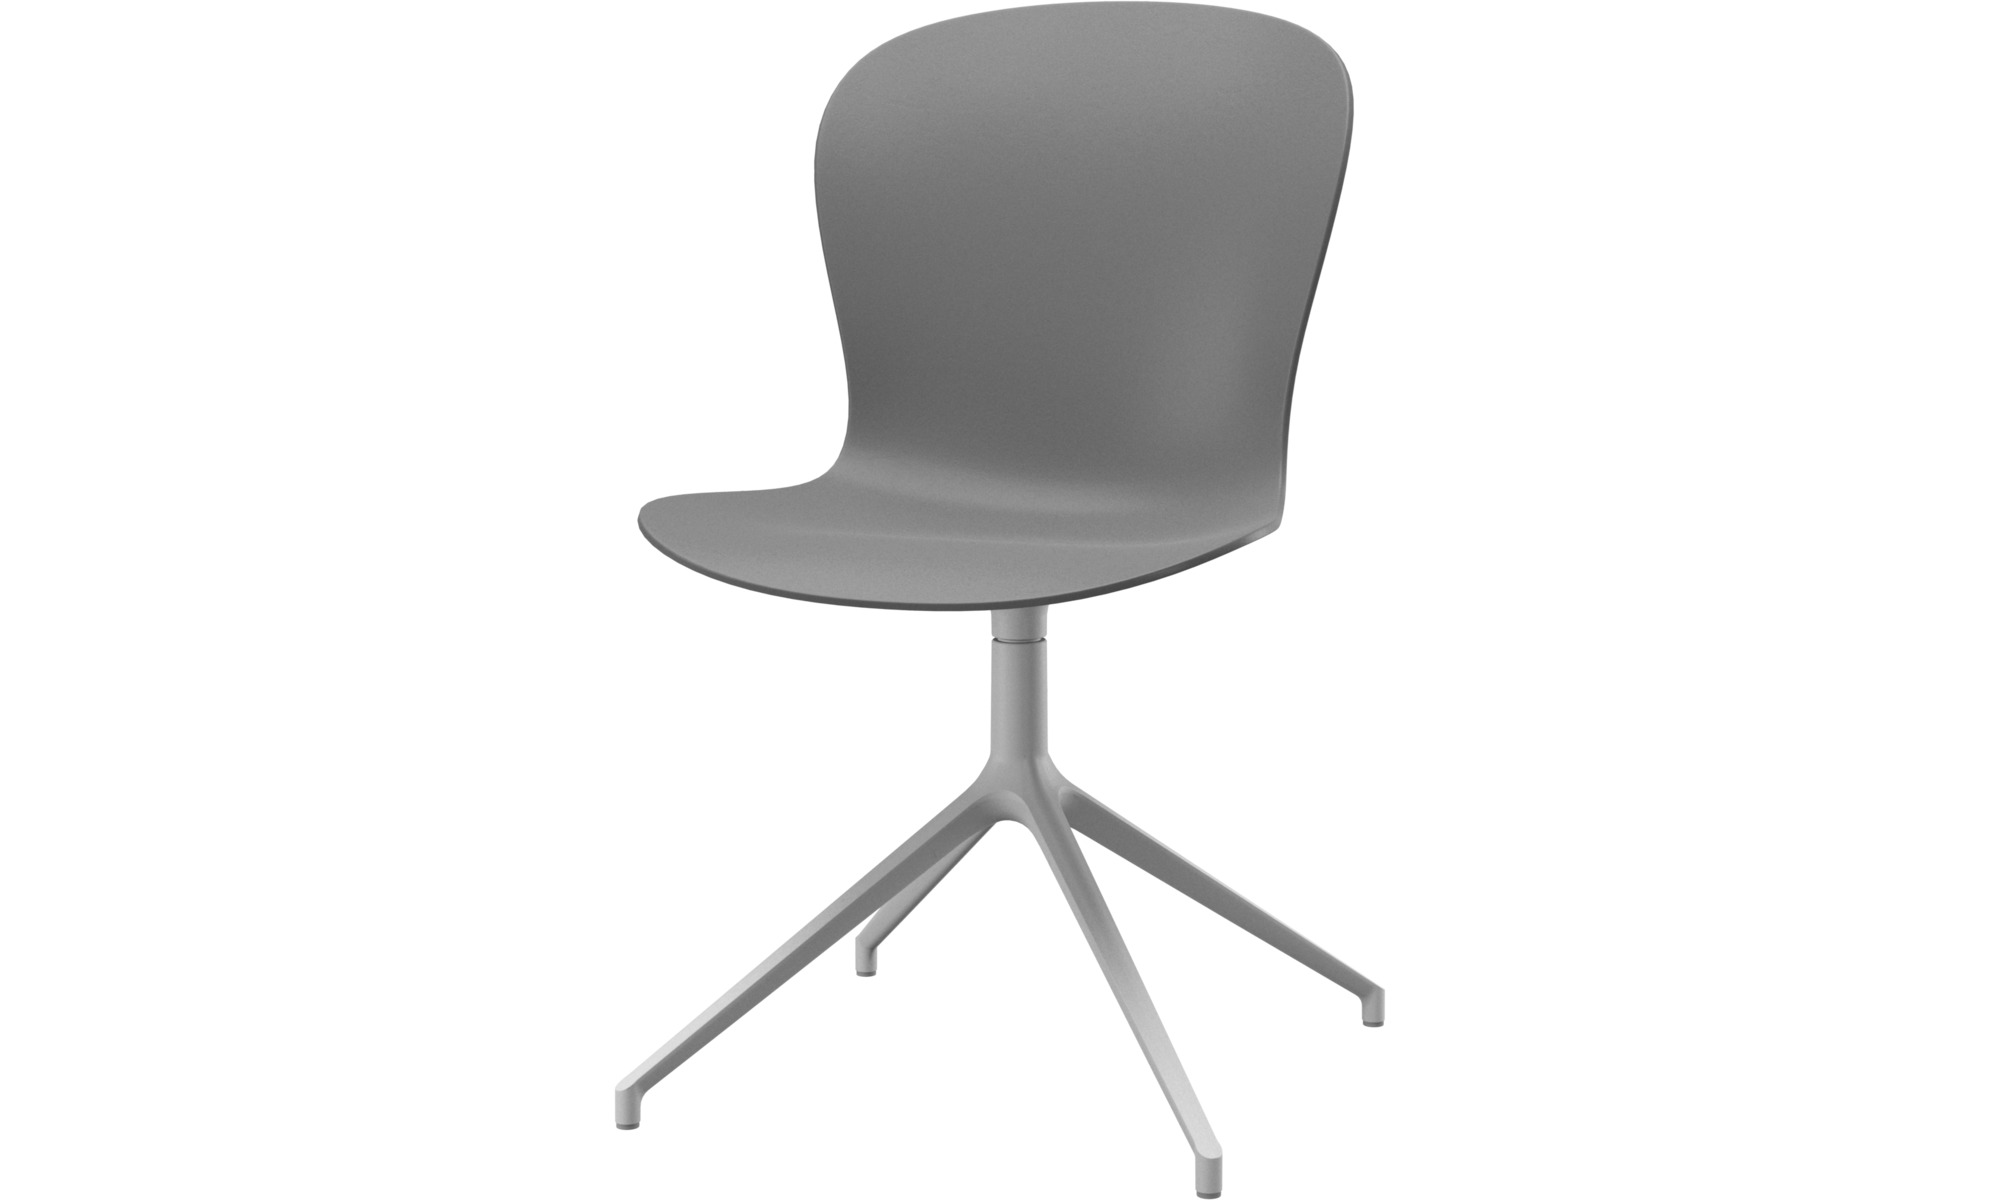 Home office chairs - Adelaide chair with swivel function - Grey - Plastic